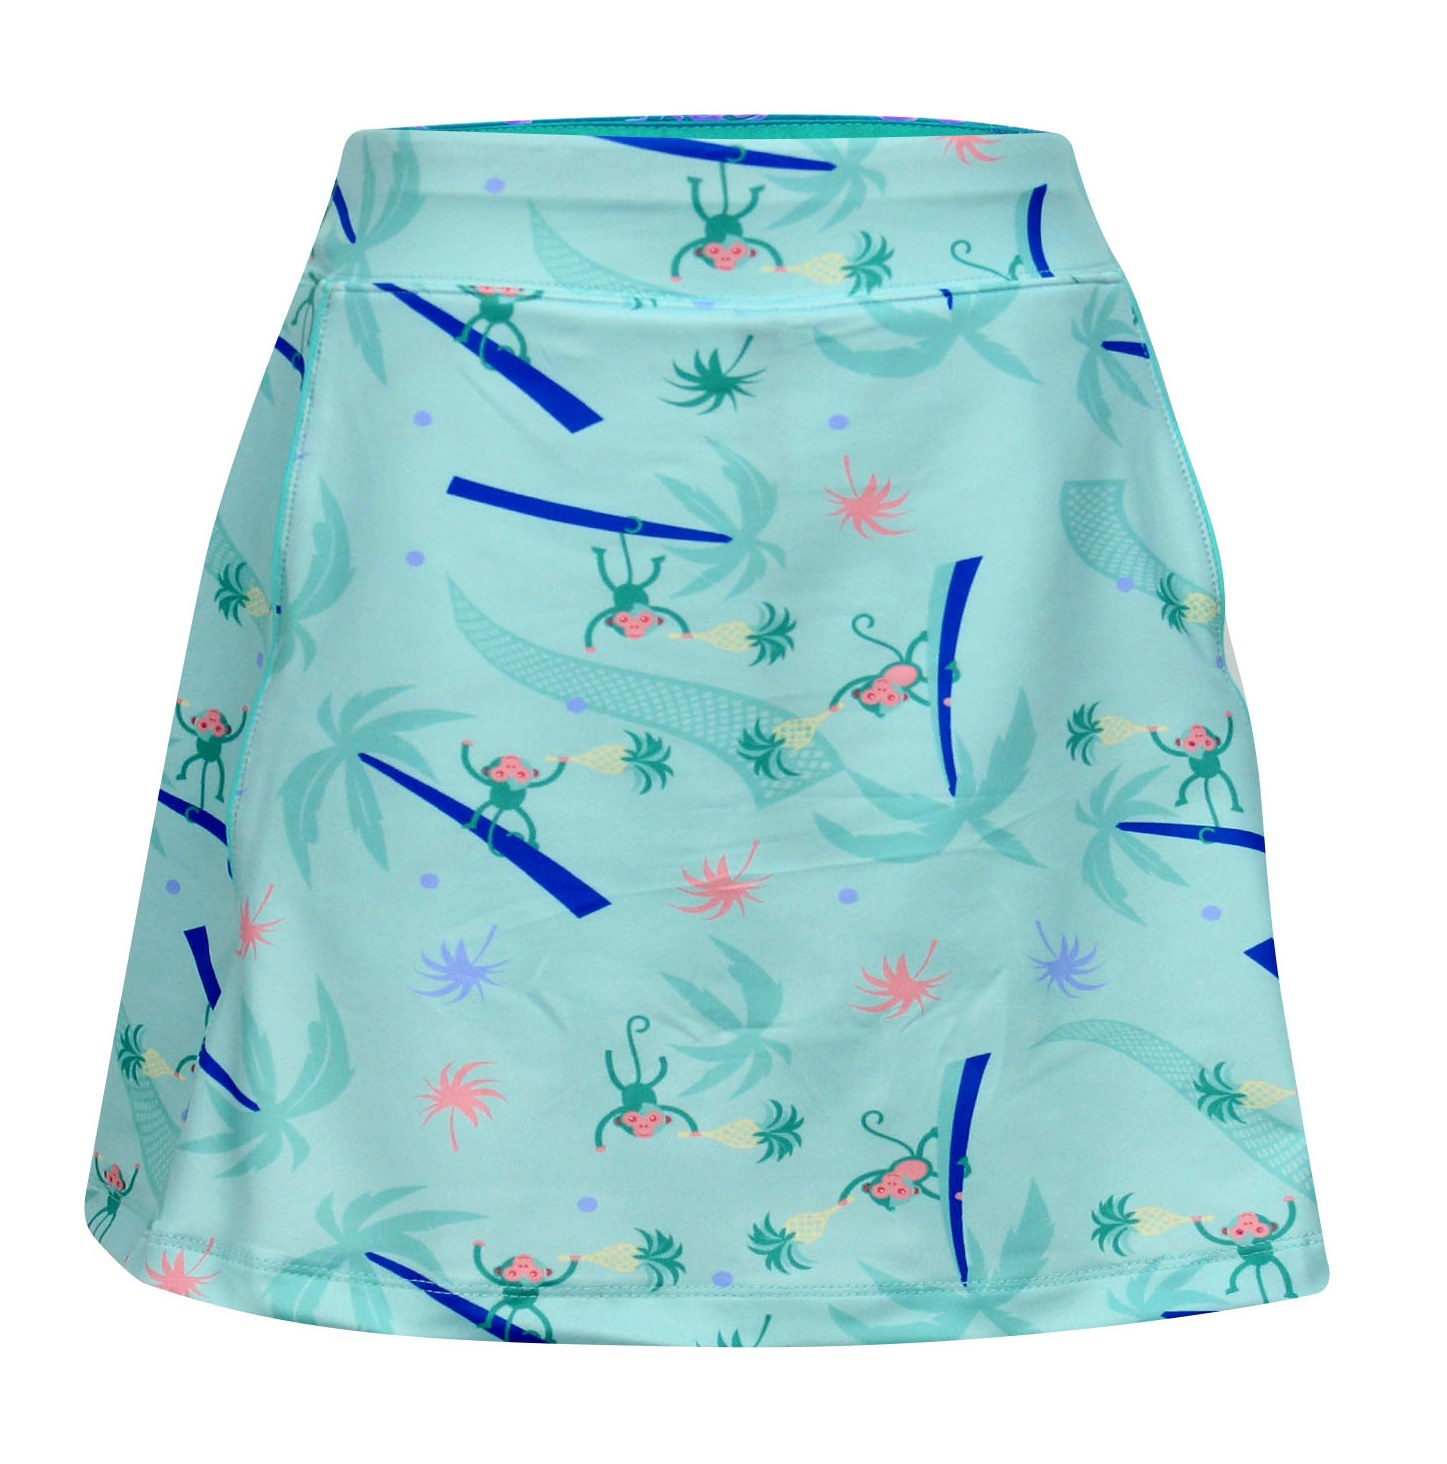 Tara Pull On  Skort in Monkey Love Print